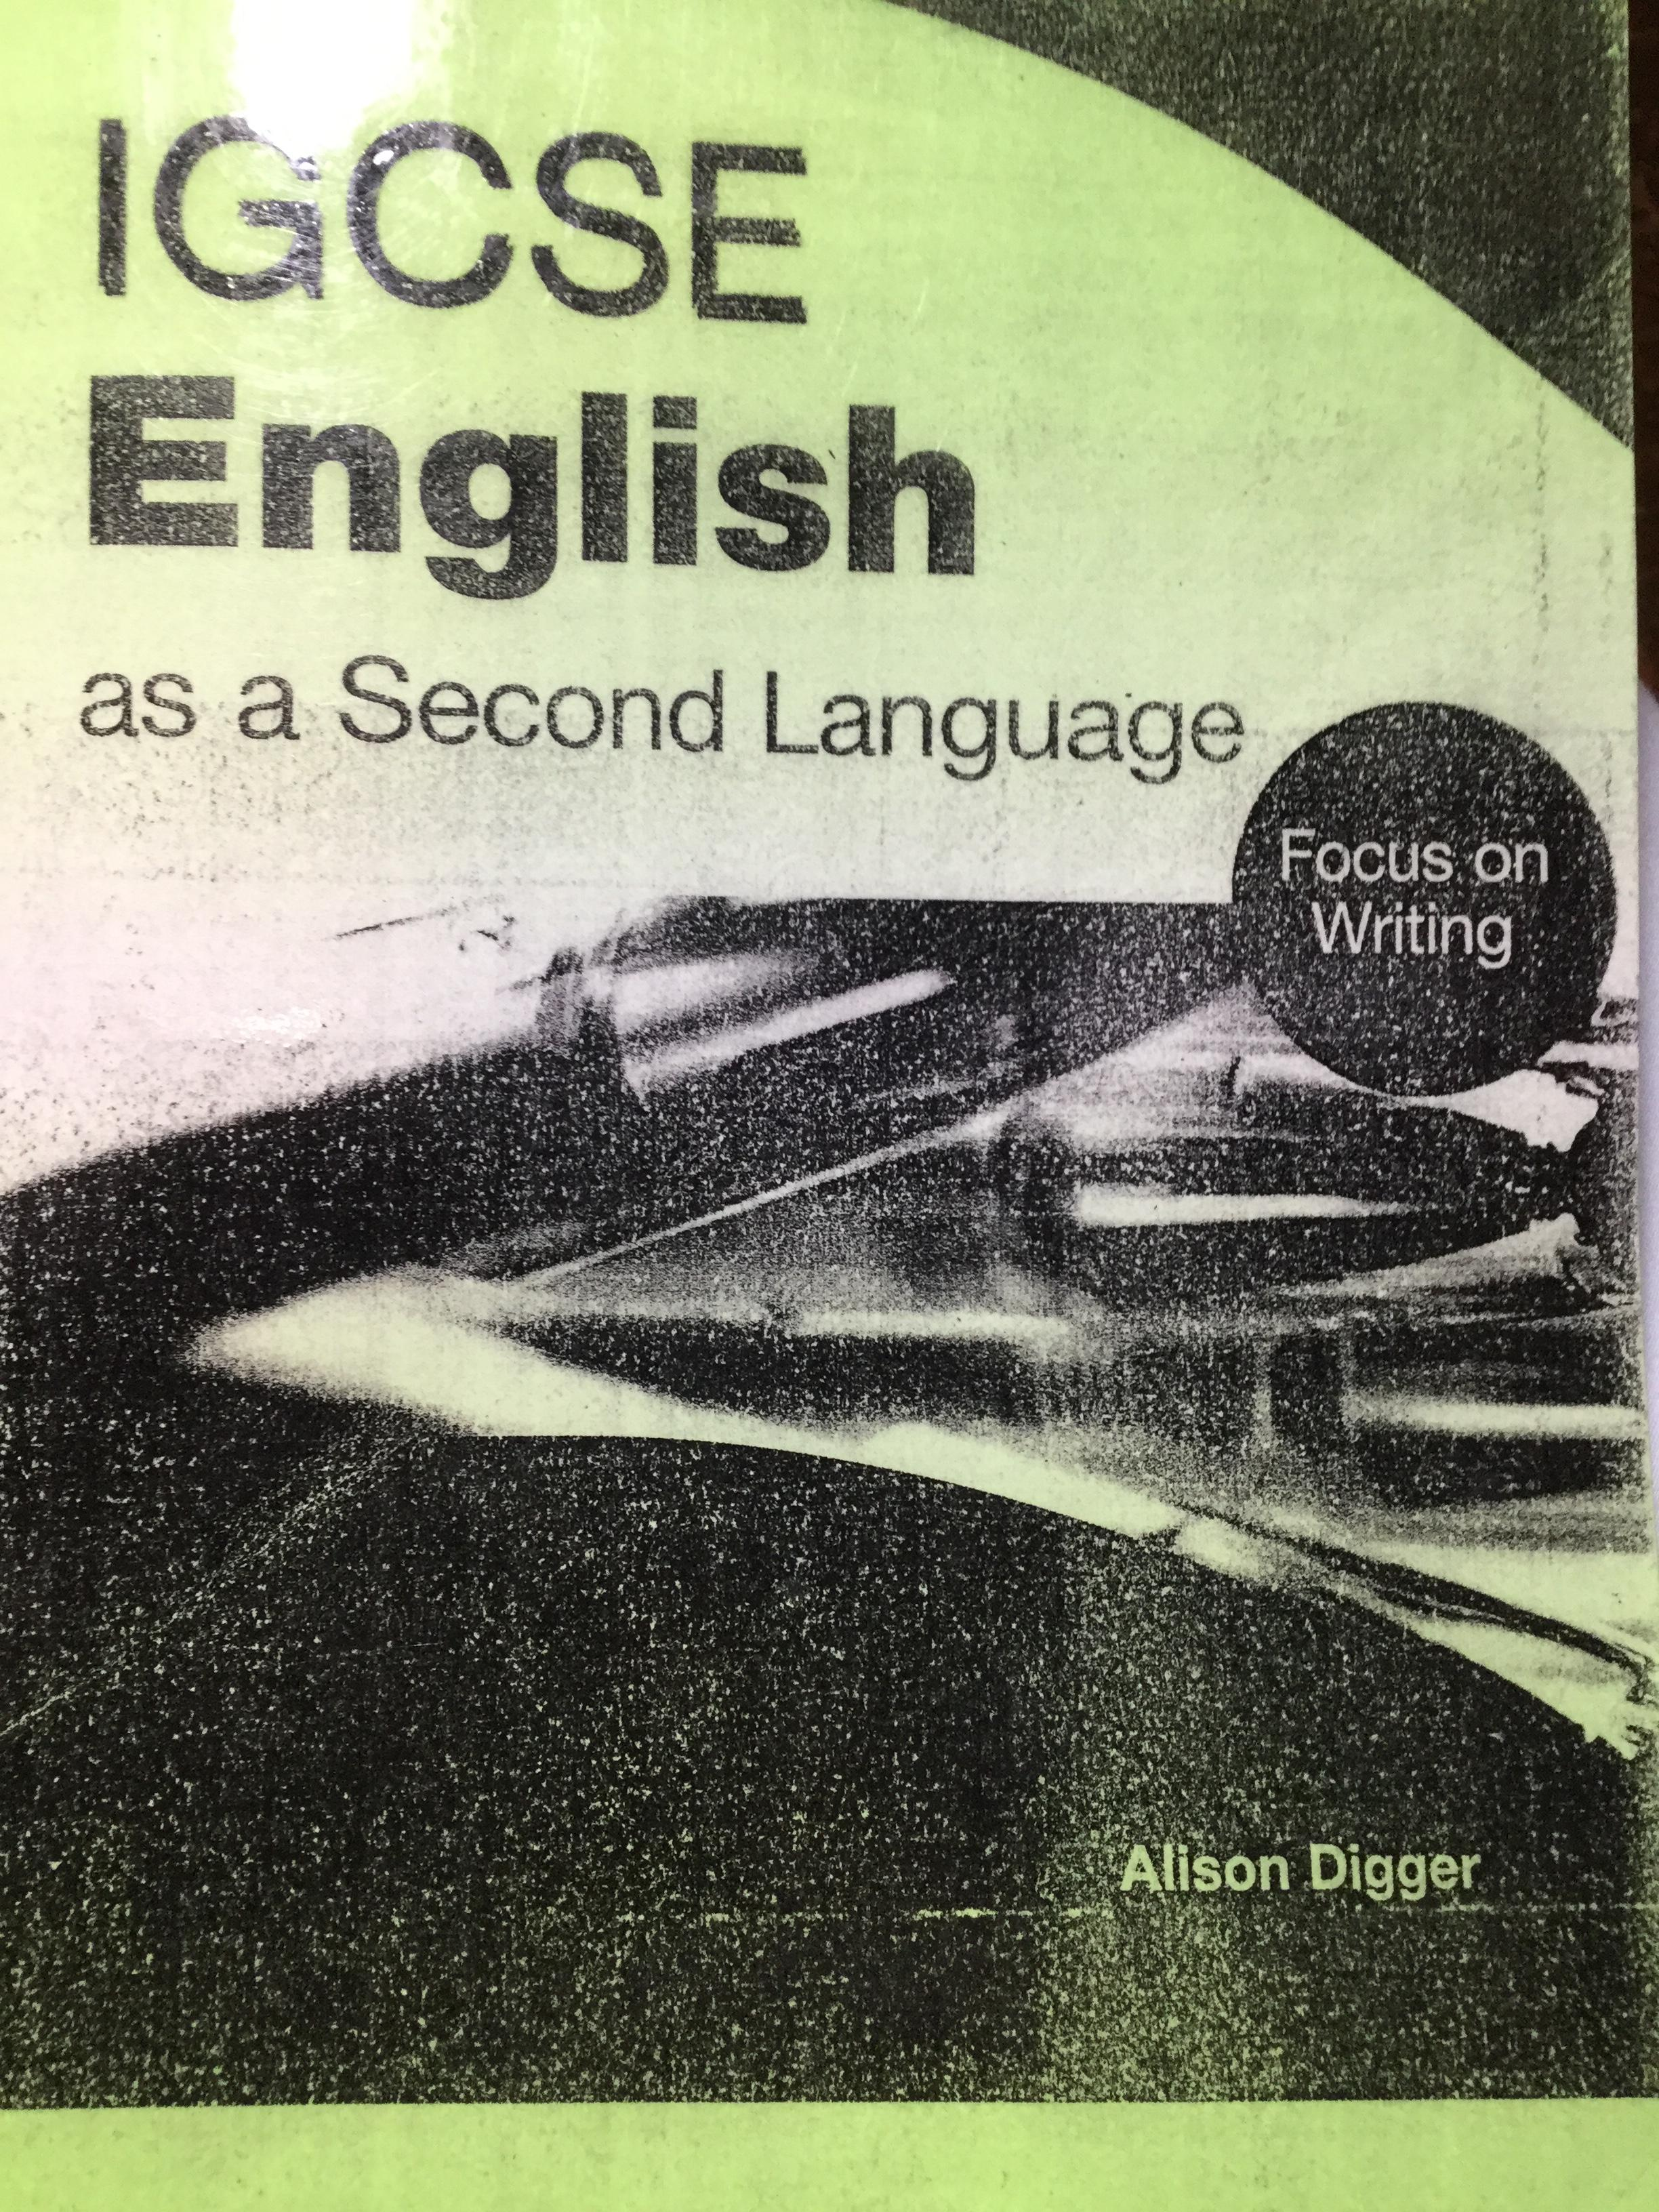 IGCSE English. As a Second Language. Focus on Writing